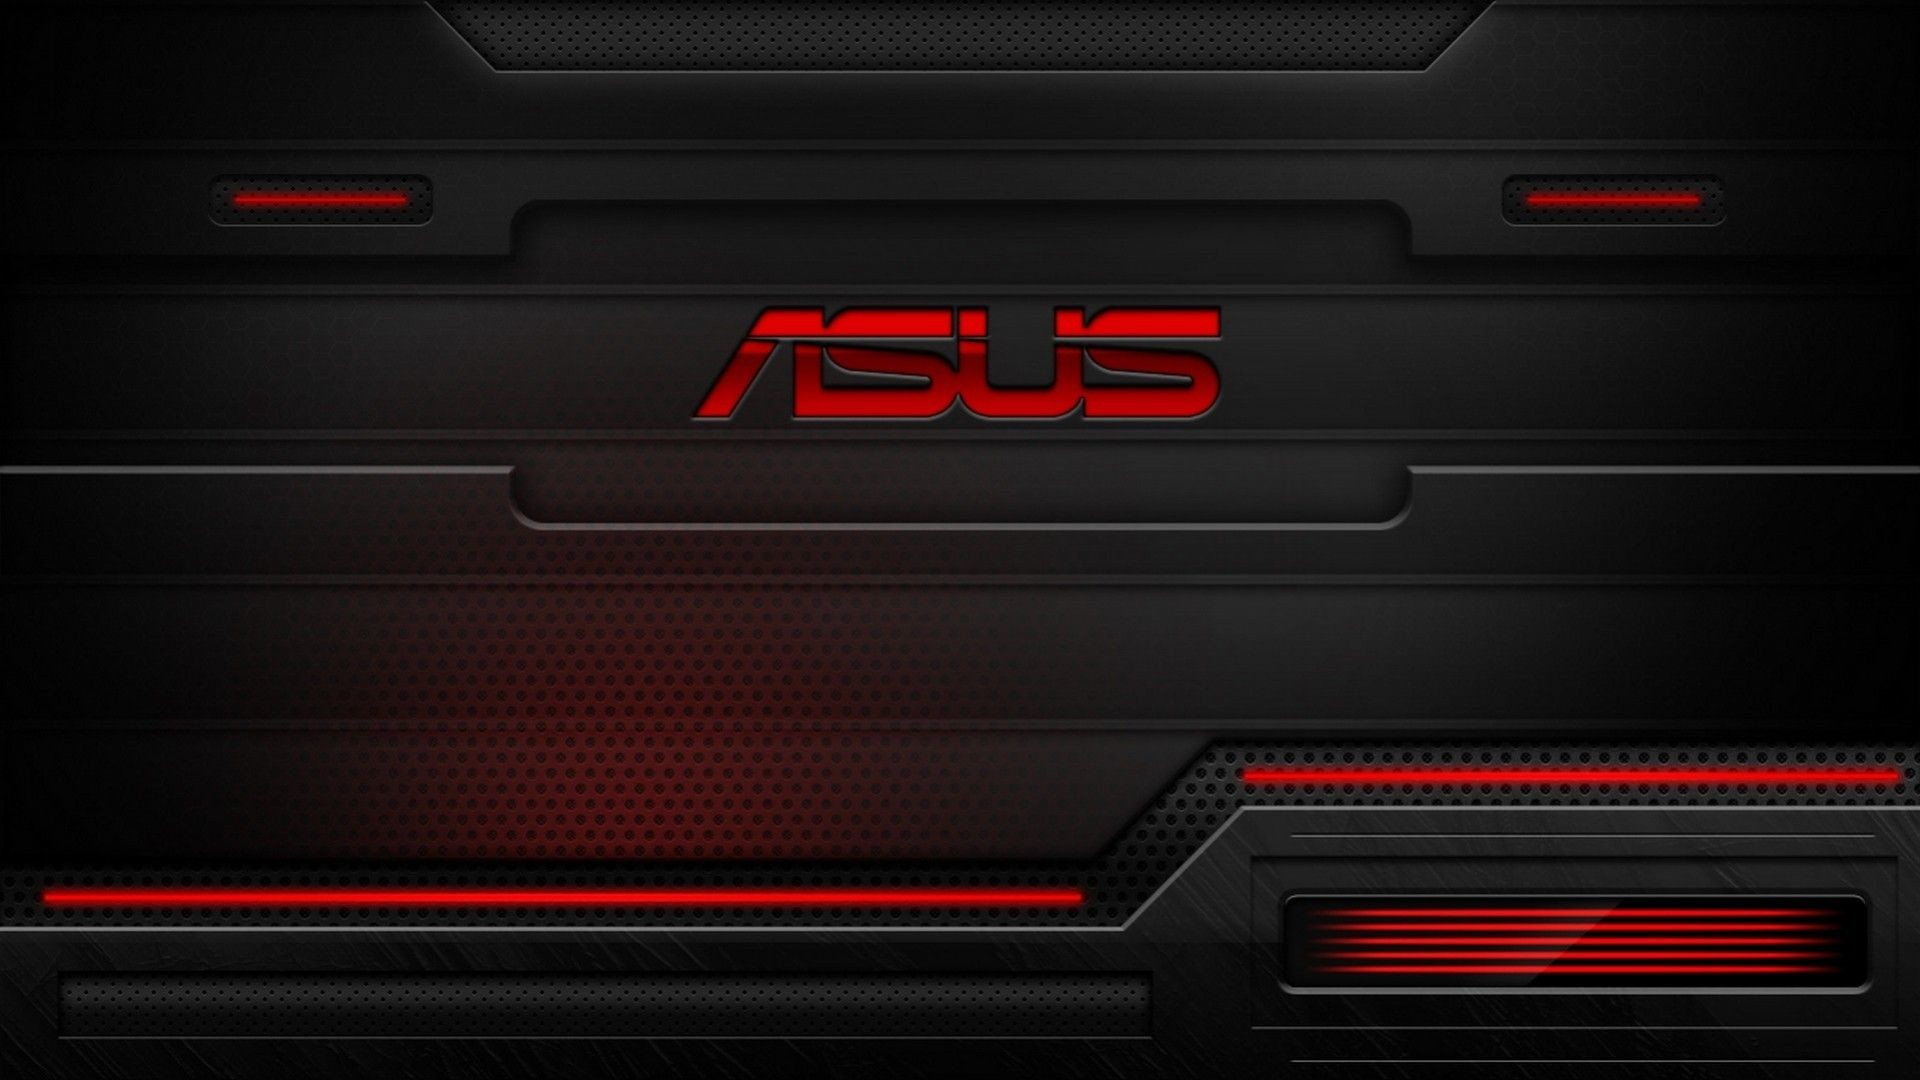 1920x1200 Radiance From ASUS Wallpapers And Images